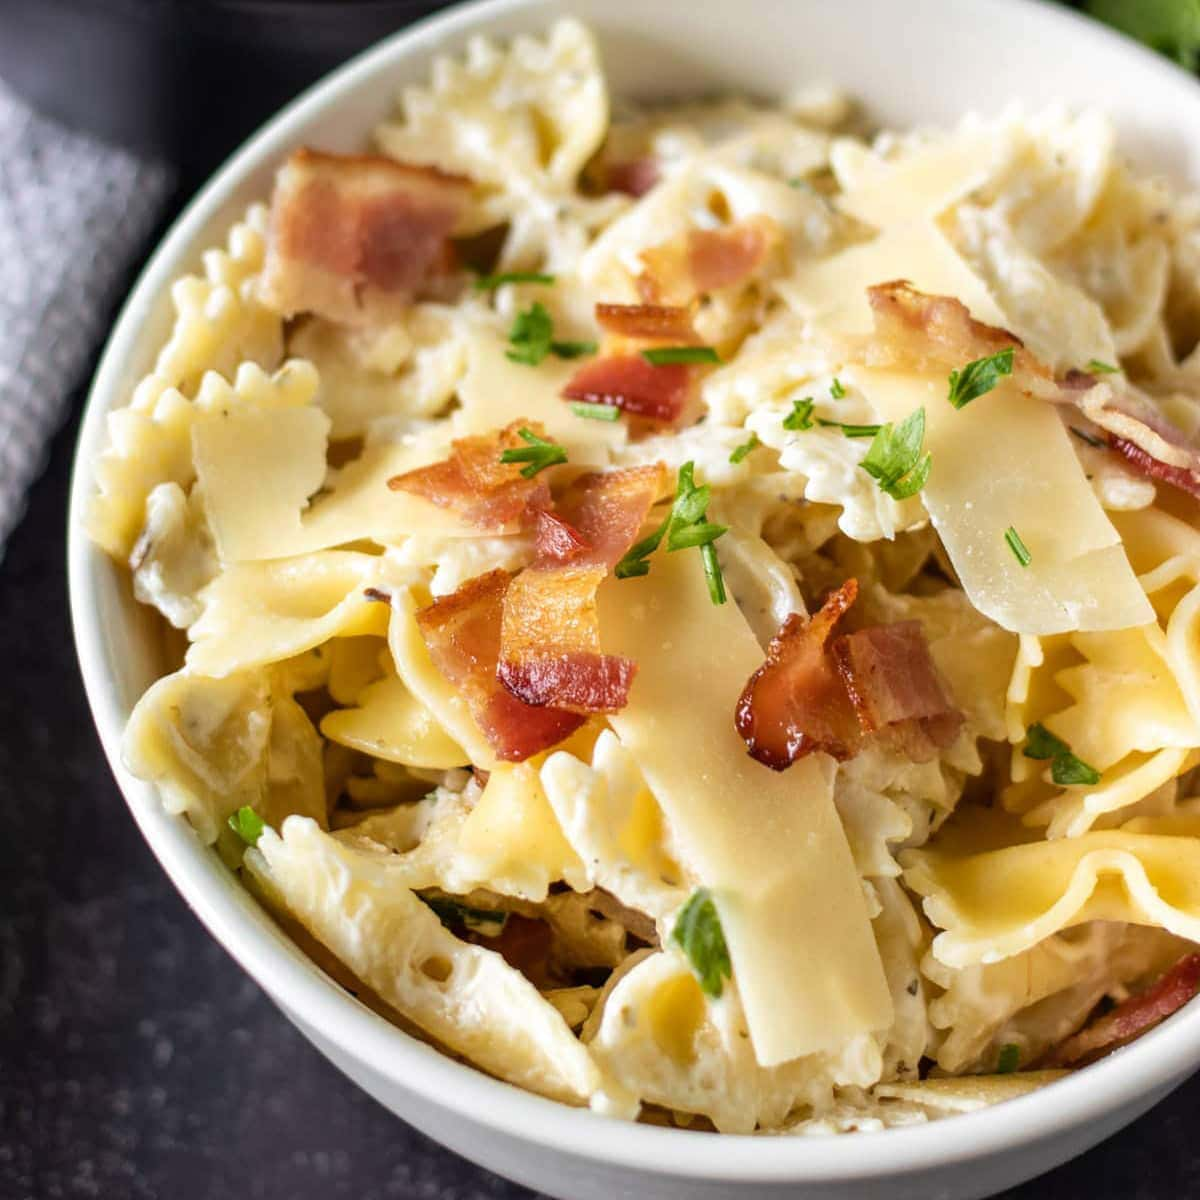 How to cook bowtie pasta in the microwave